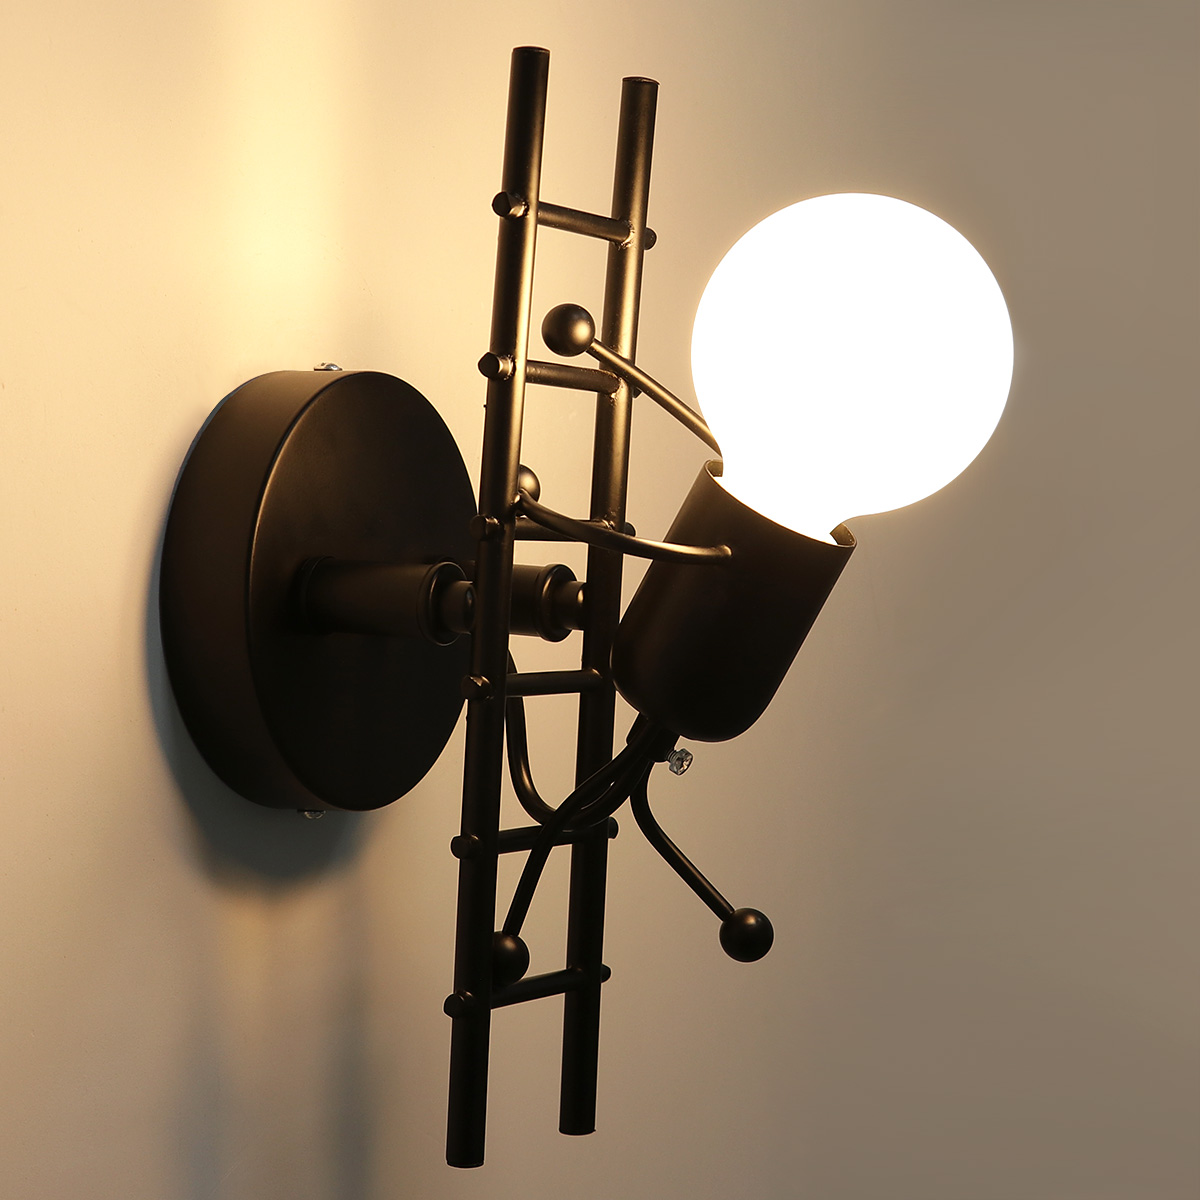 Children Room Kitchen HAWEE Humanoid Creative Wall Light Indoor Wall Lamp Modern Wall Sconce Light Art Deco Iron E27 Base for Bedroom White Stair Hallway Restaurant